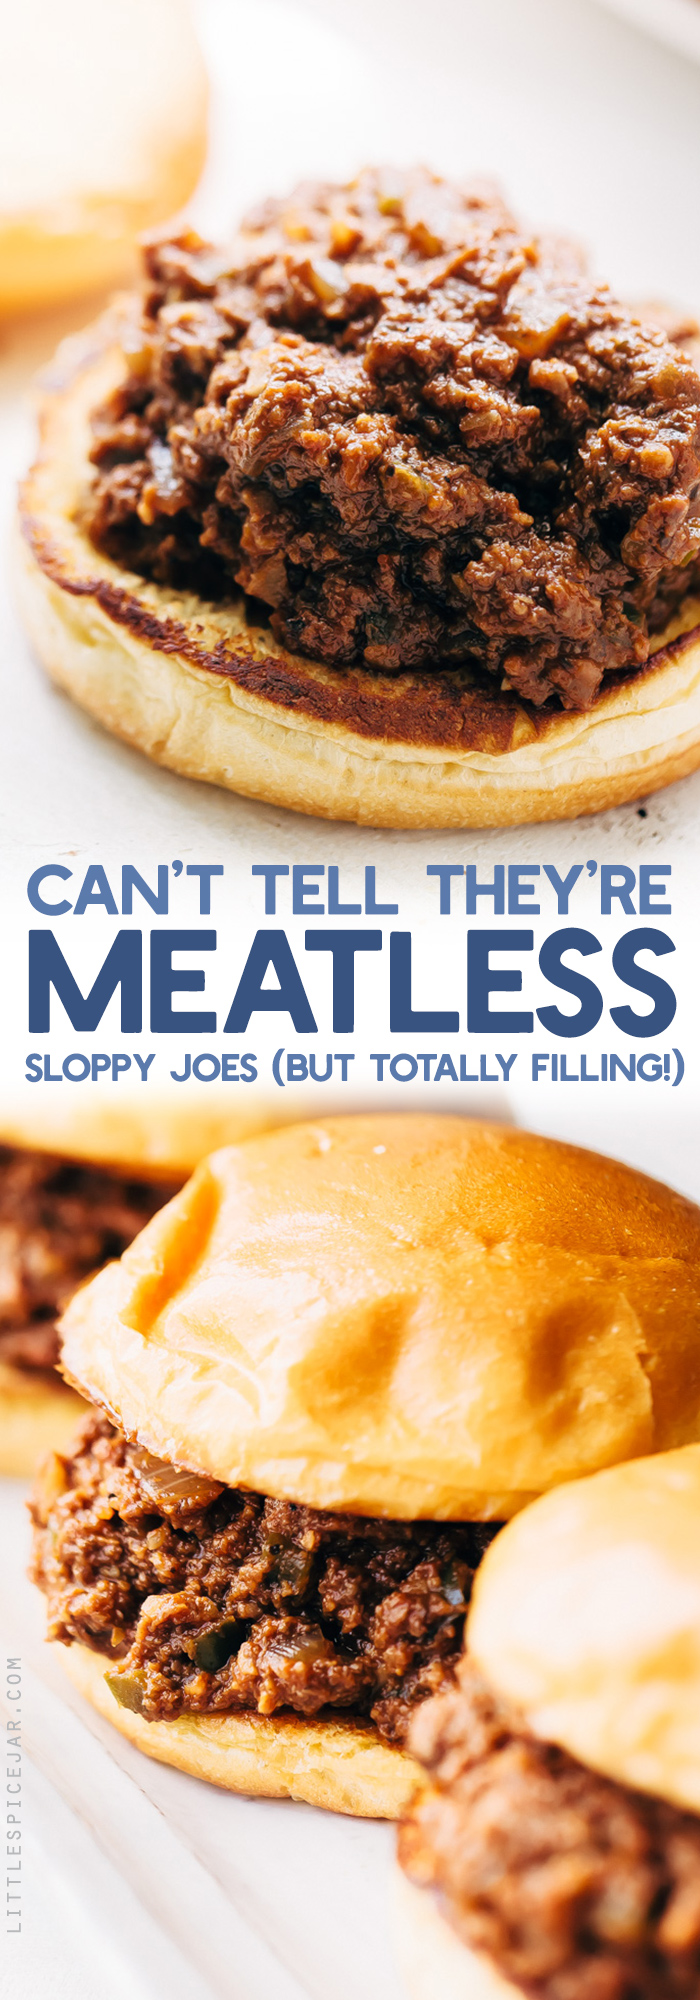 You Won't Believe It's Meatless Sloppy Joes - loaded with tons of flavor and texture these taste just like the real thing only they're completely vegan friendly! #vegan #vegansloppyjoes #meatlesssloppyjoes #meatlessmonday #vegetarian | Littlespicejar.com